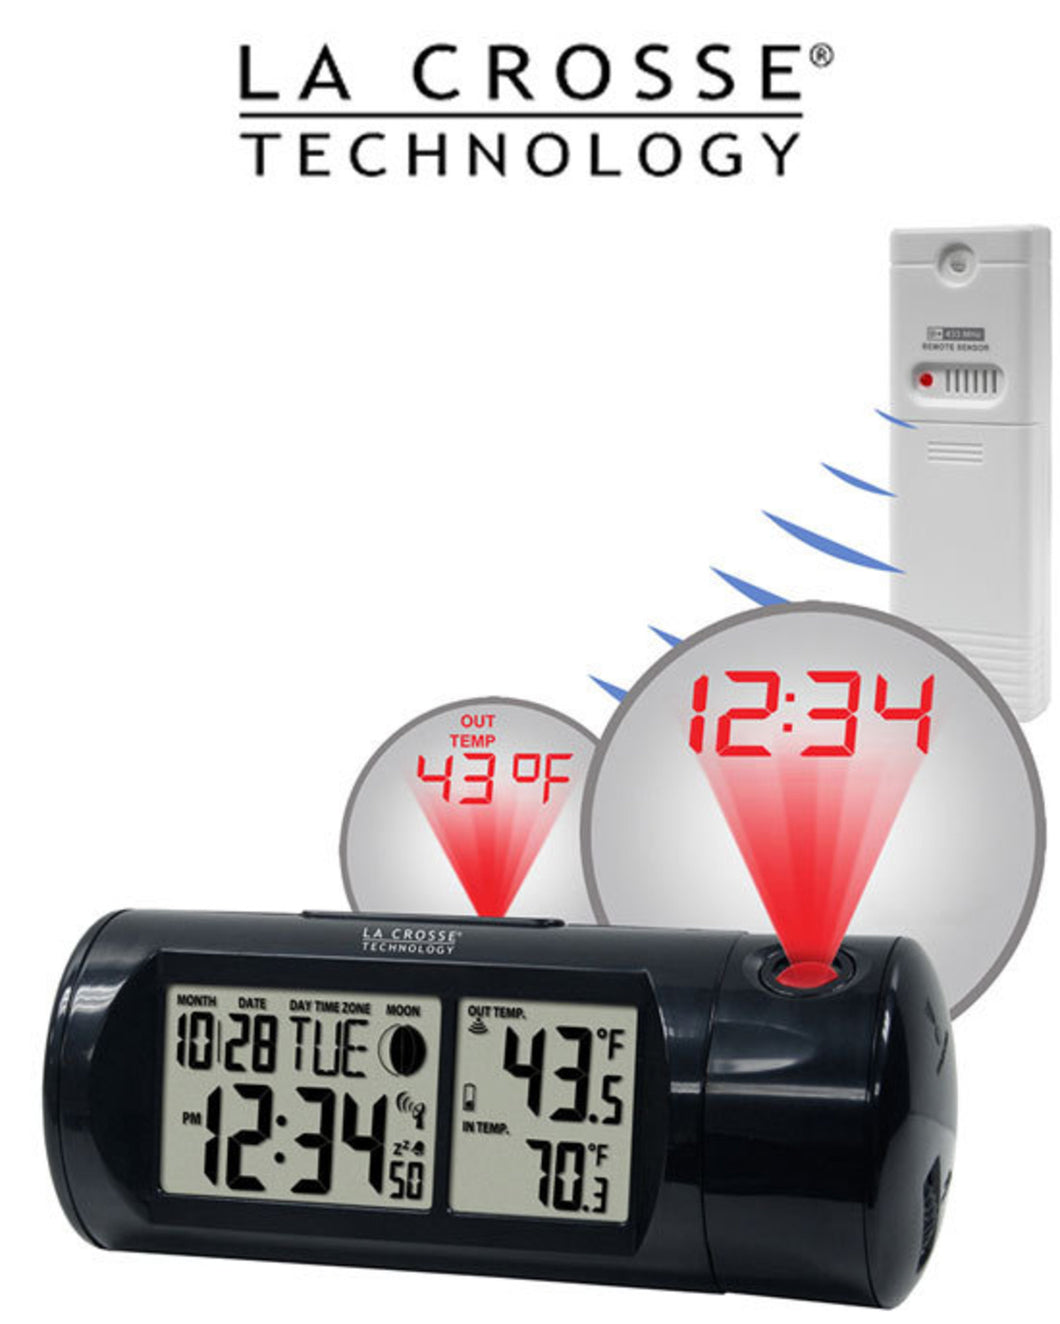 La Crosse Projection Alarm Clock Outdoor Temperature